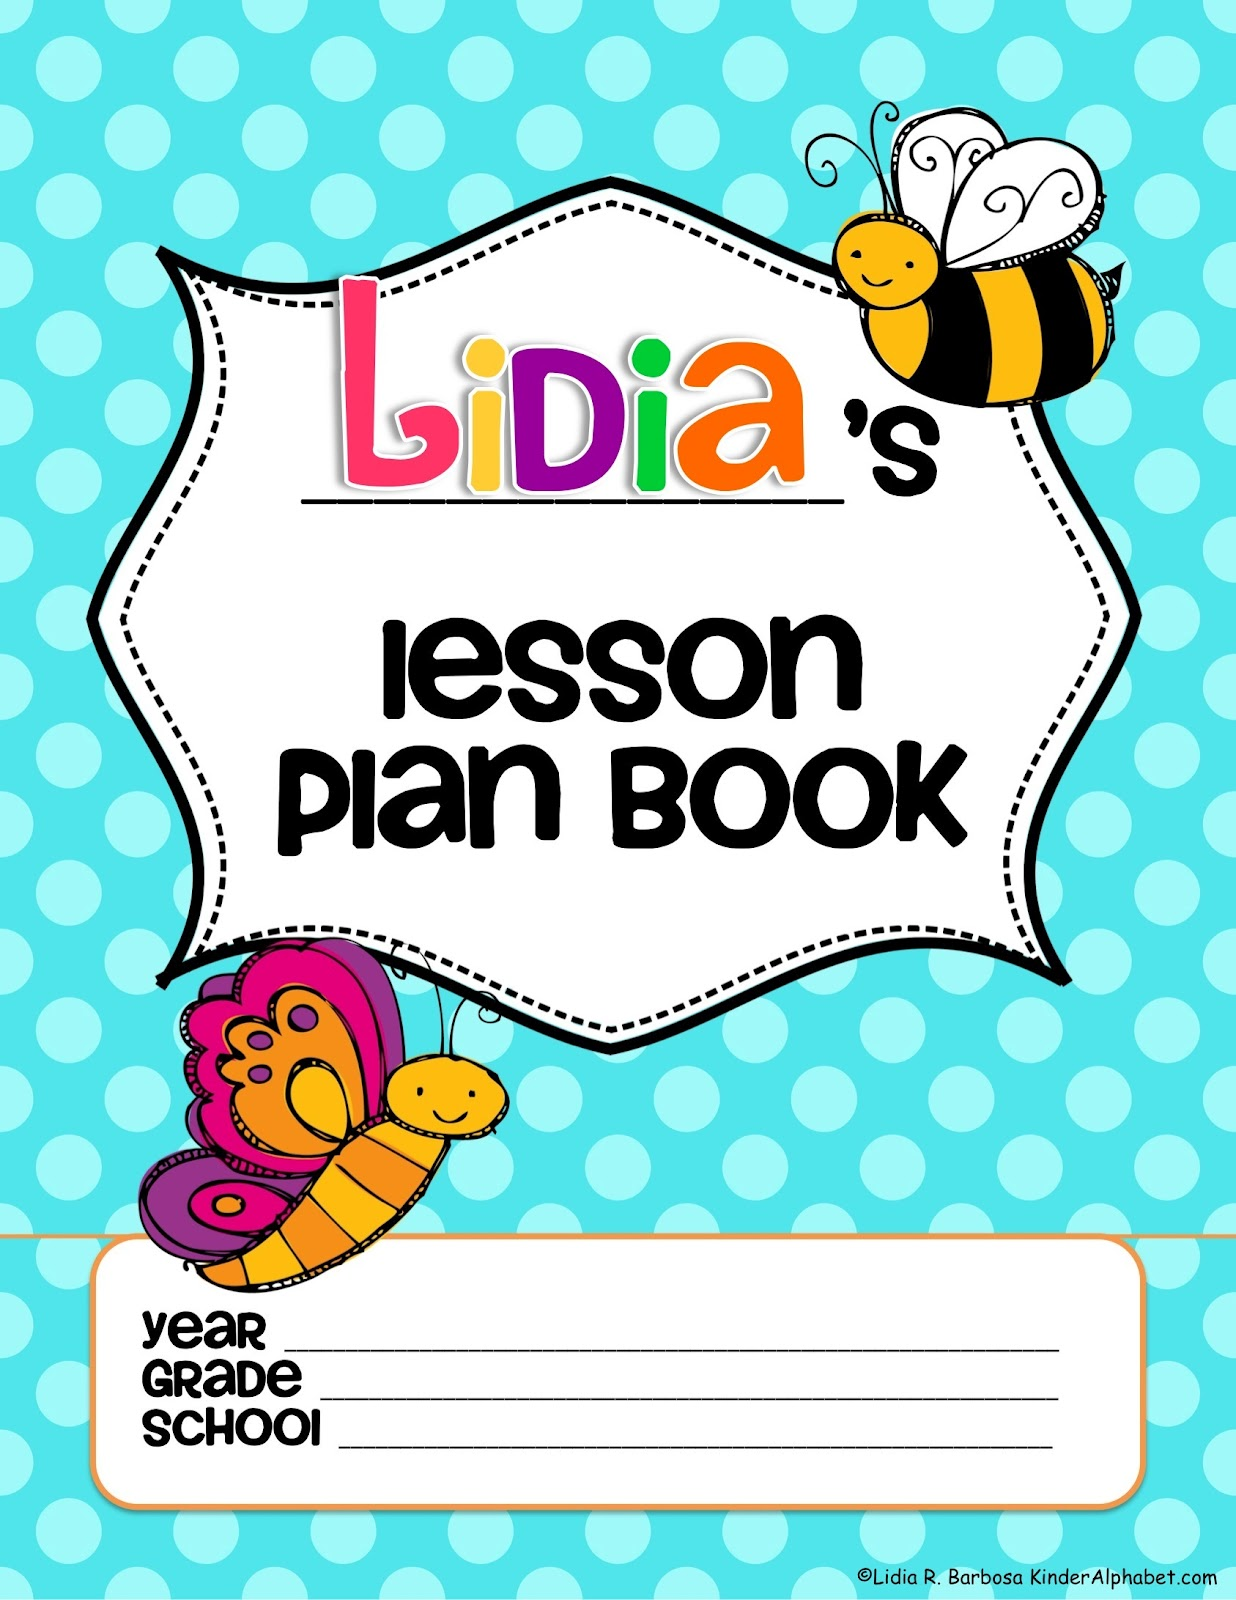 Book Cover Design Lesson Plan : Forever in first lidia s back to school freebies swap